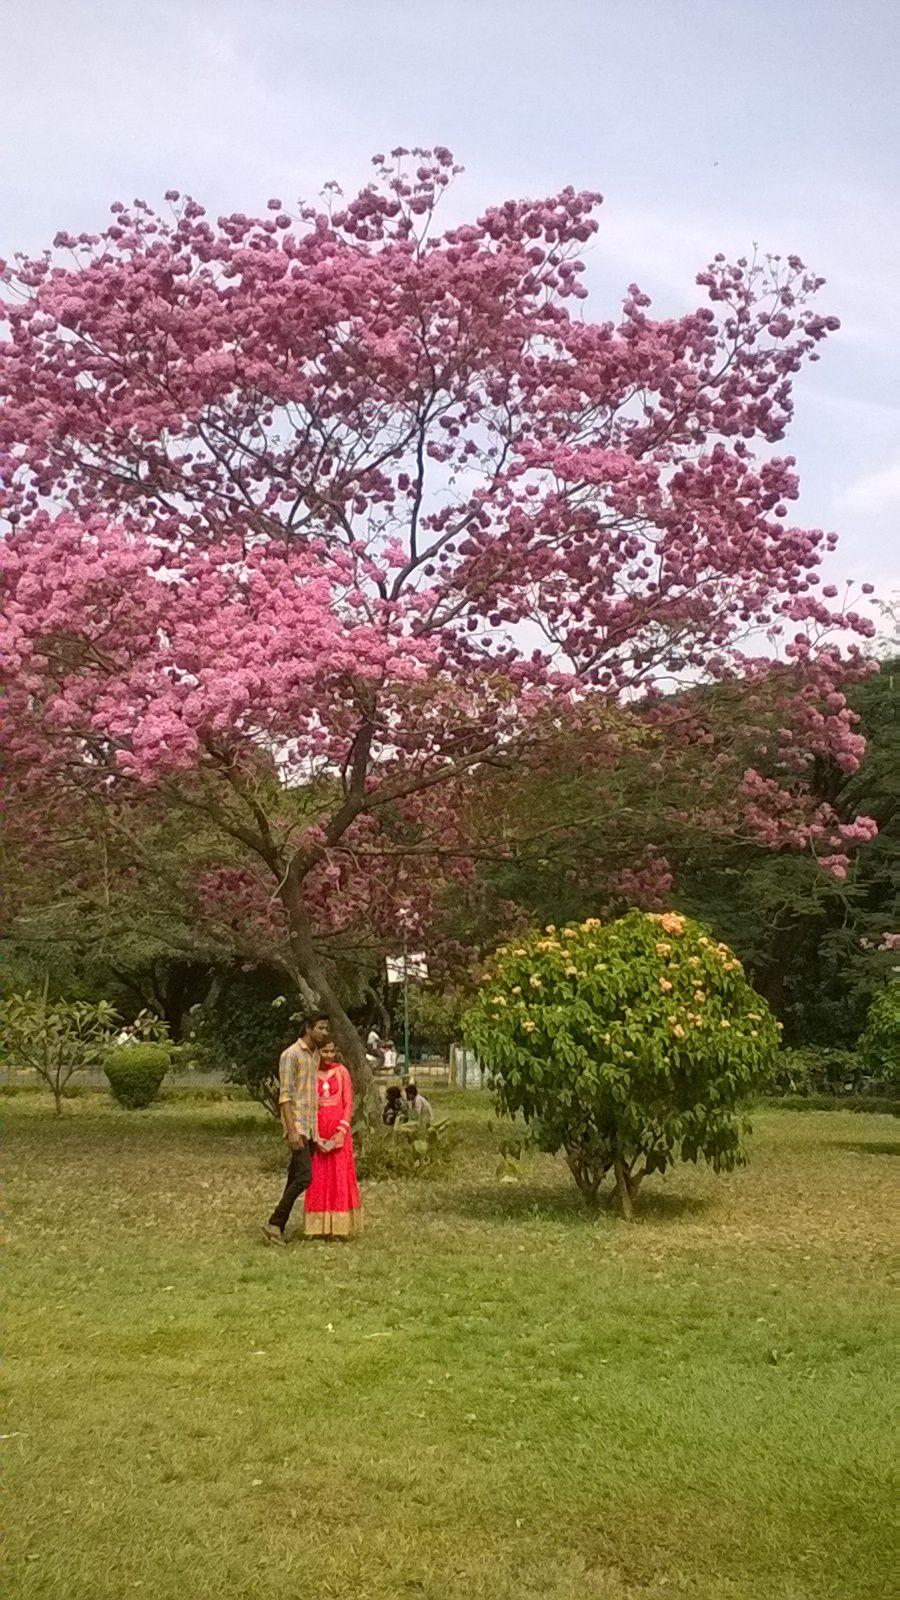 The Cubbon Park Of Bangalore Karnataka India The Park Houses Buildings That Are Aesthetically Designed Magnificent Statues Park Homes Bamboo Tree Landscape